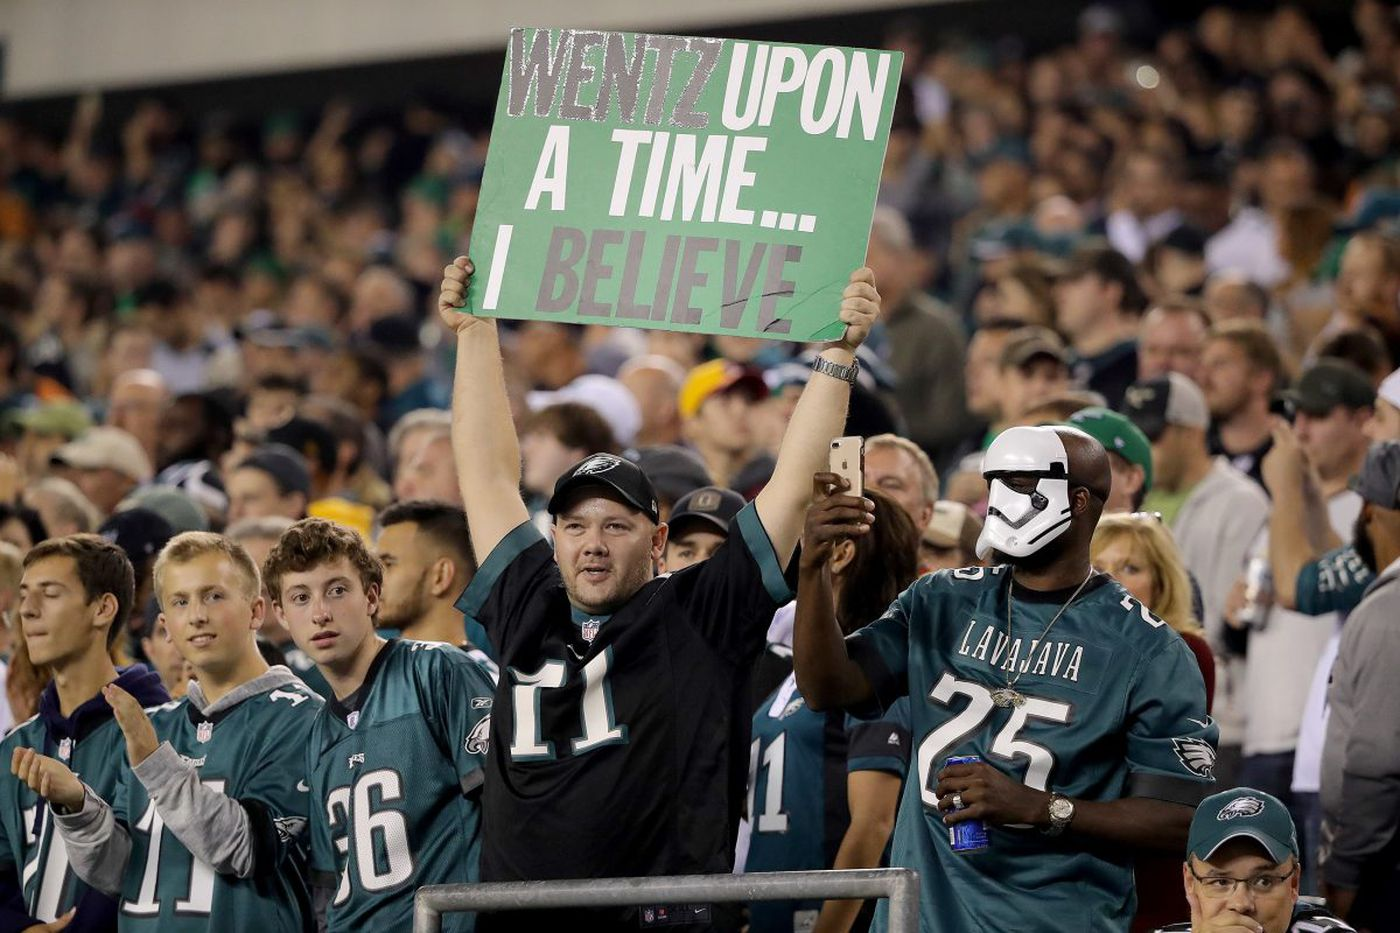 Eagles playoff tickets to go on sale at 10 a.m.